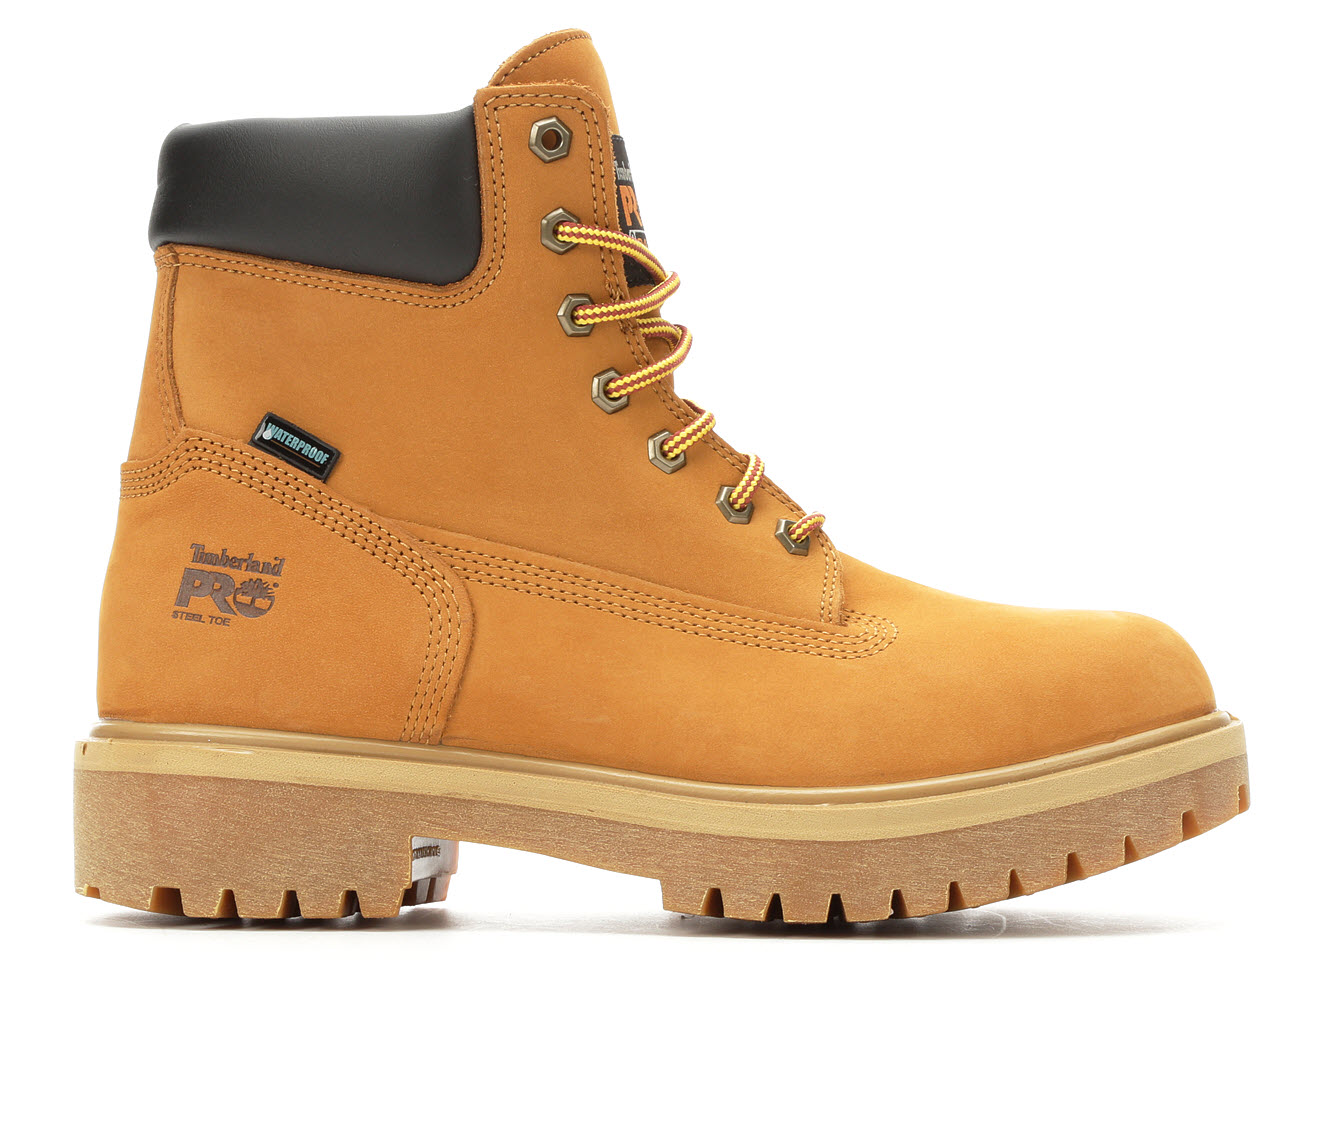 Timberland Pro Direct Attach 65016 Steel Toe Waterproof Men's Boots (Beige Leather)